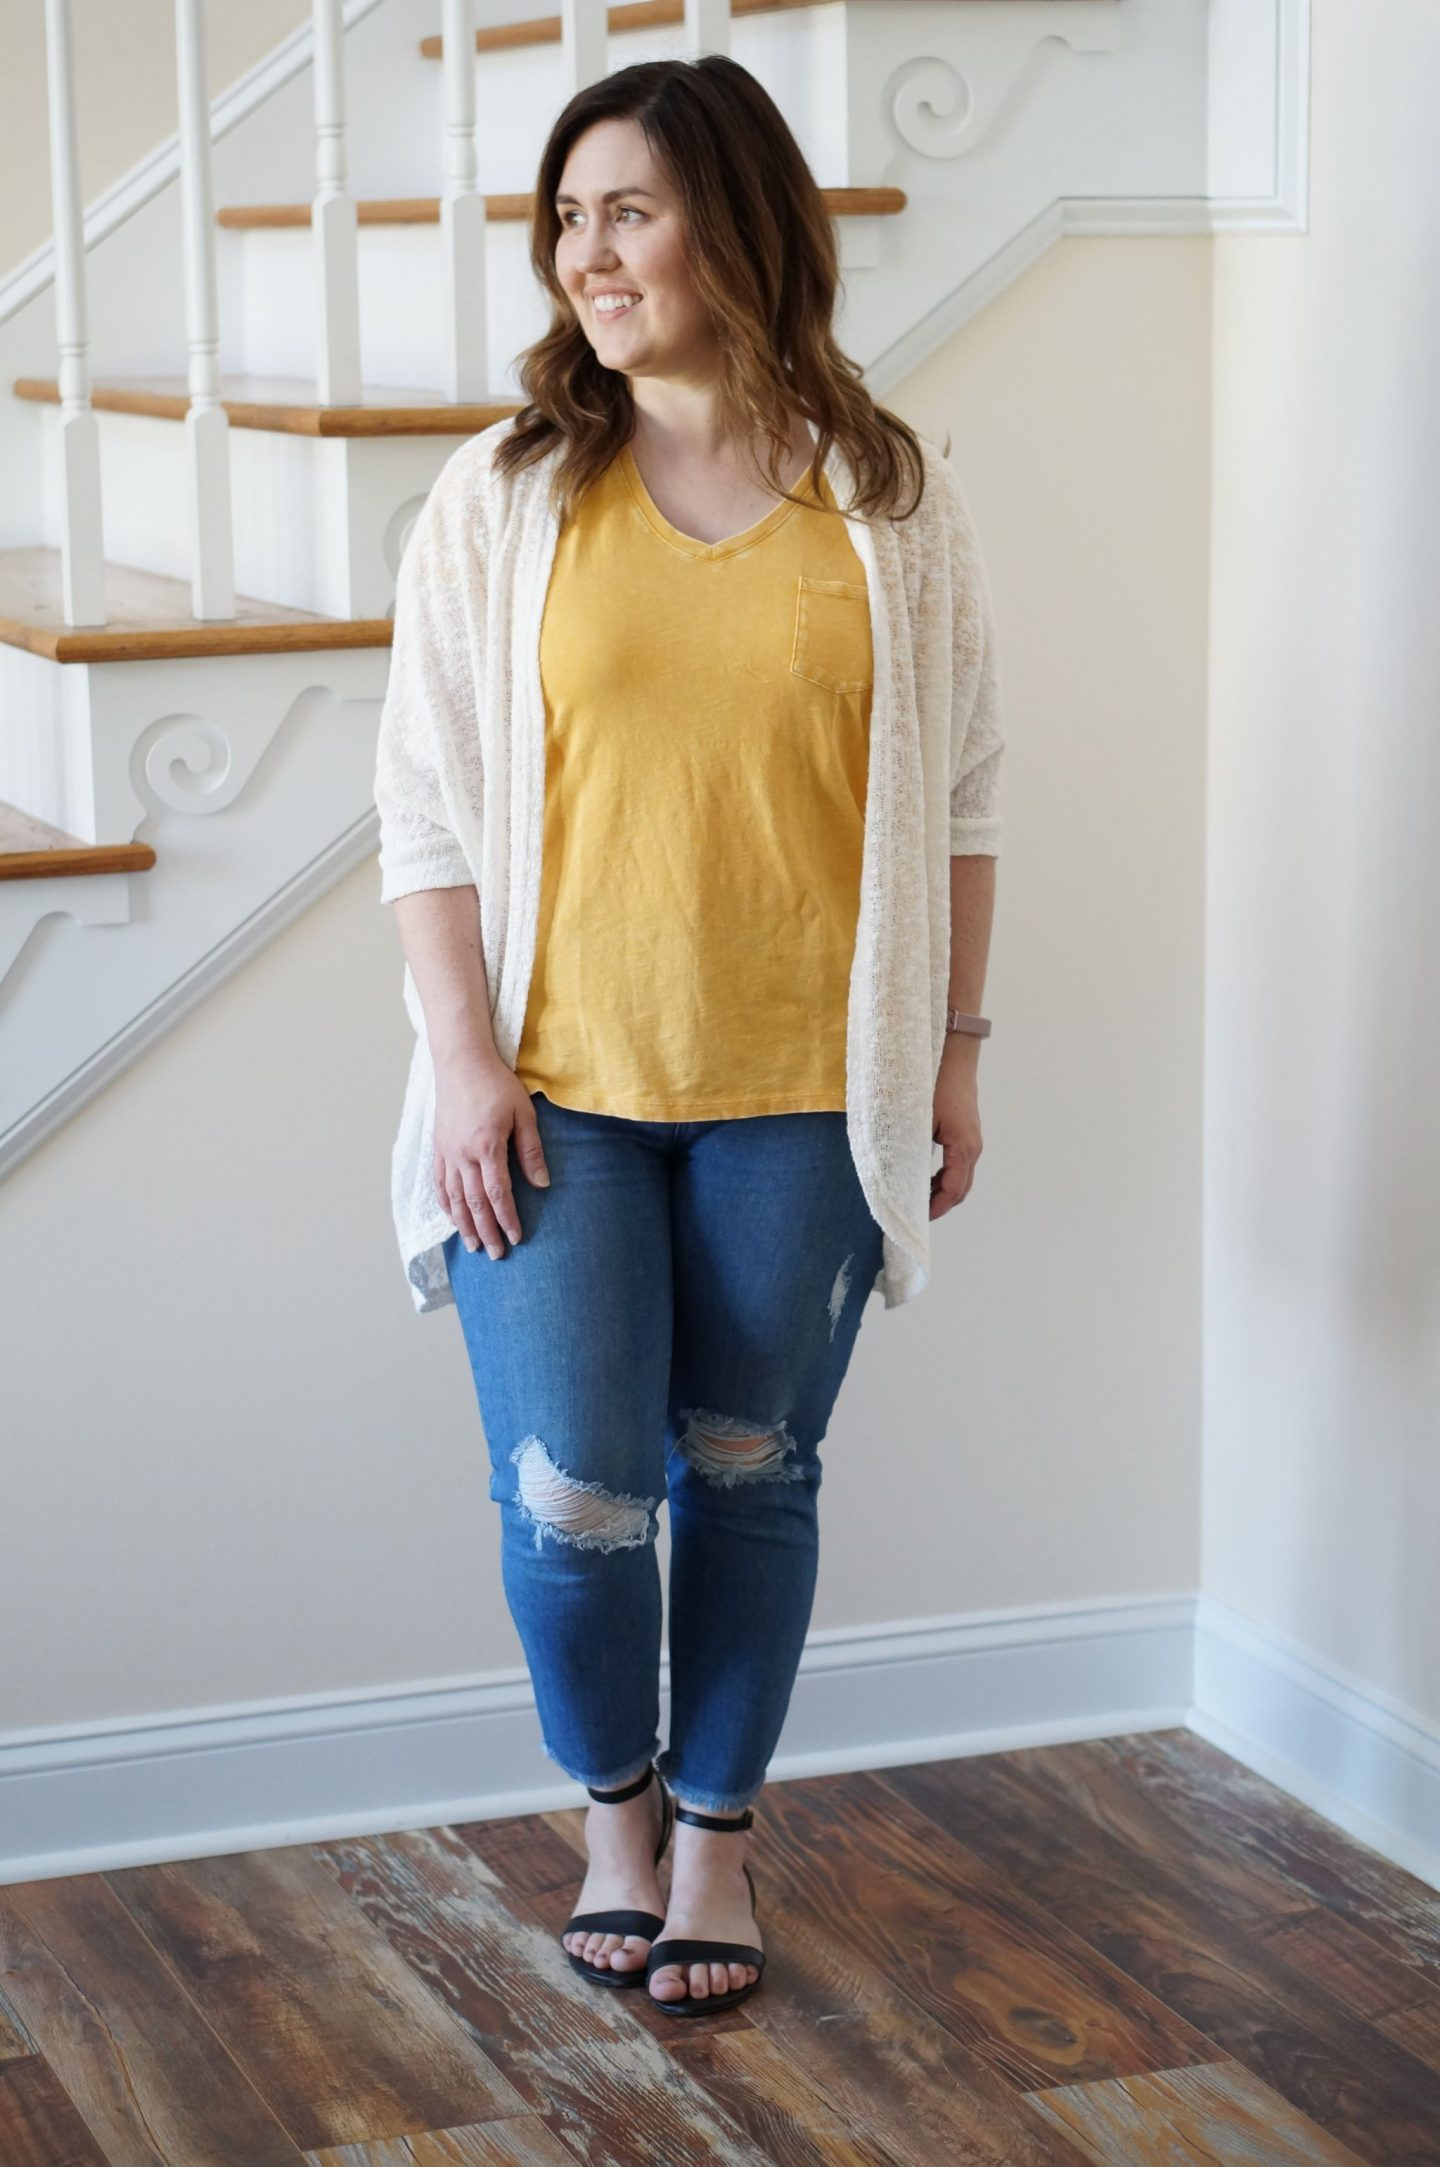 North Carolina blogger Rebecca Lately shares how to style ripped jeans for spring. If you don't like shorts, these ideas will inspire you!